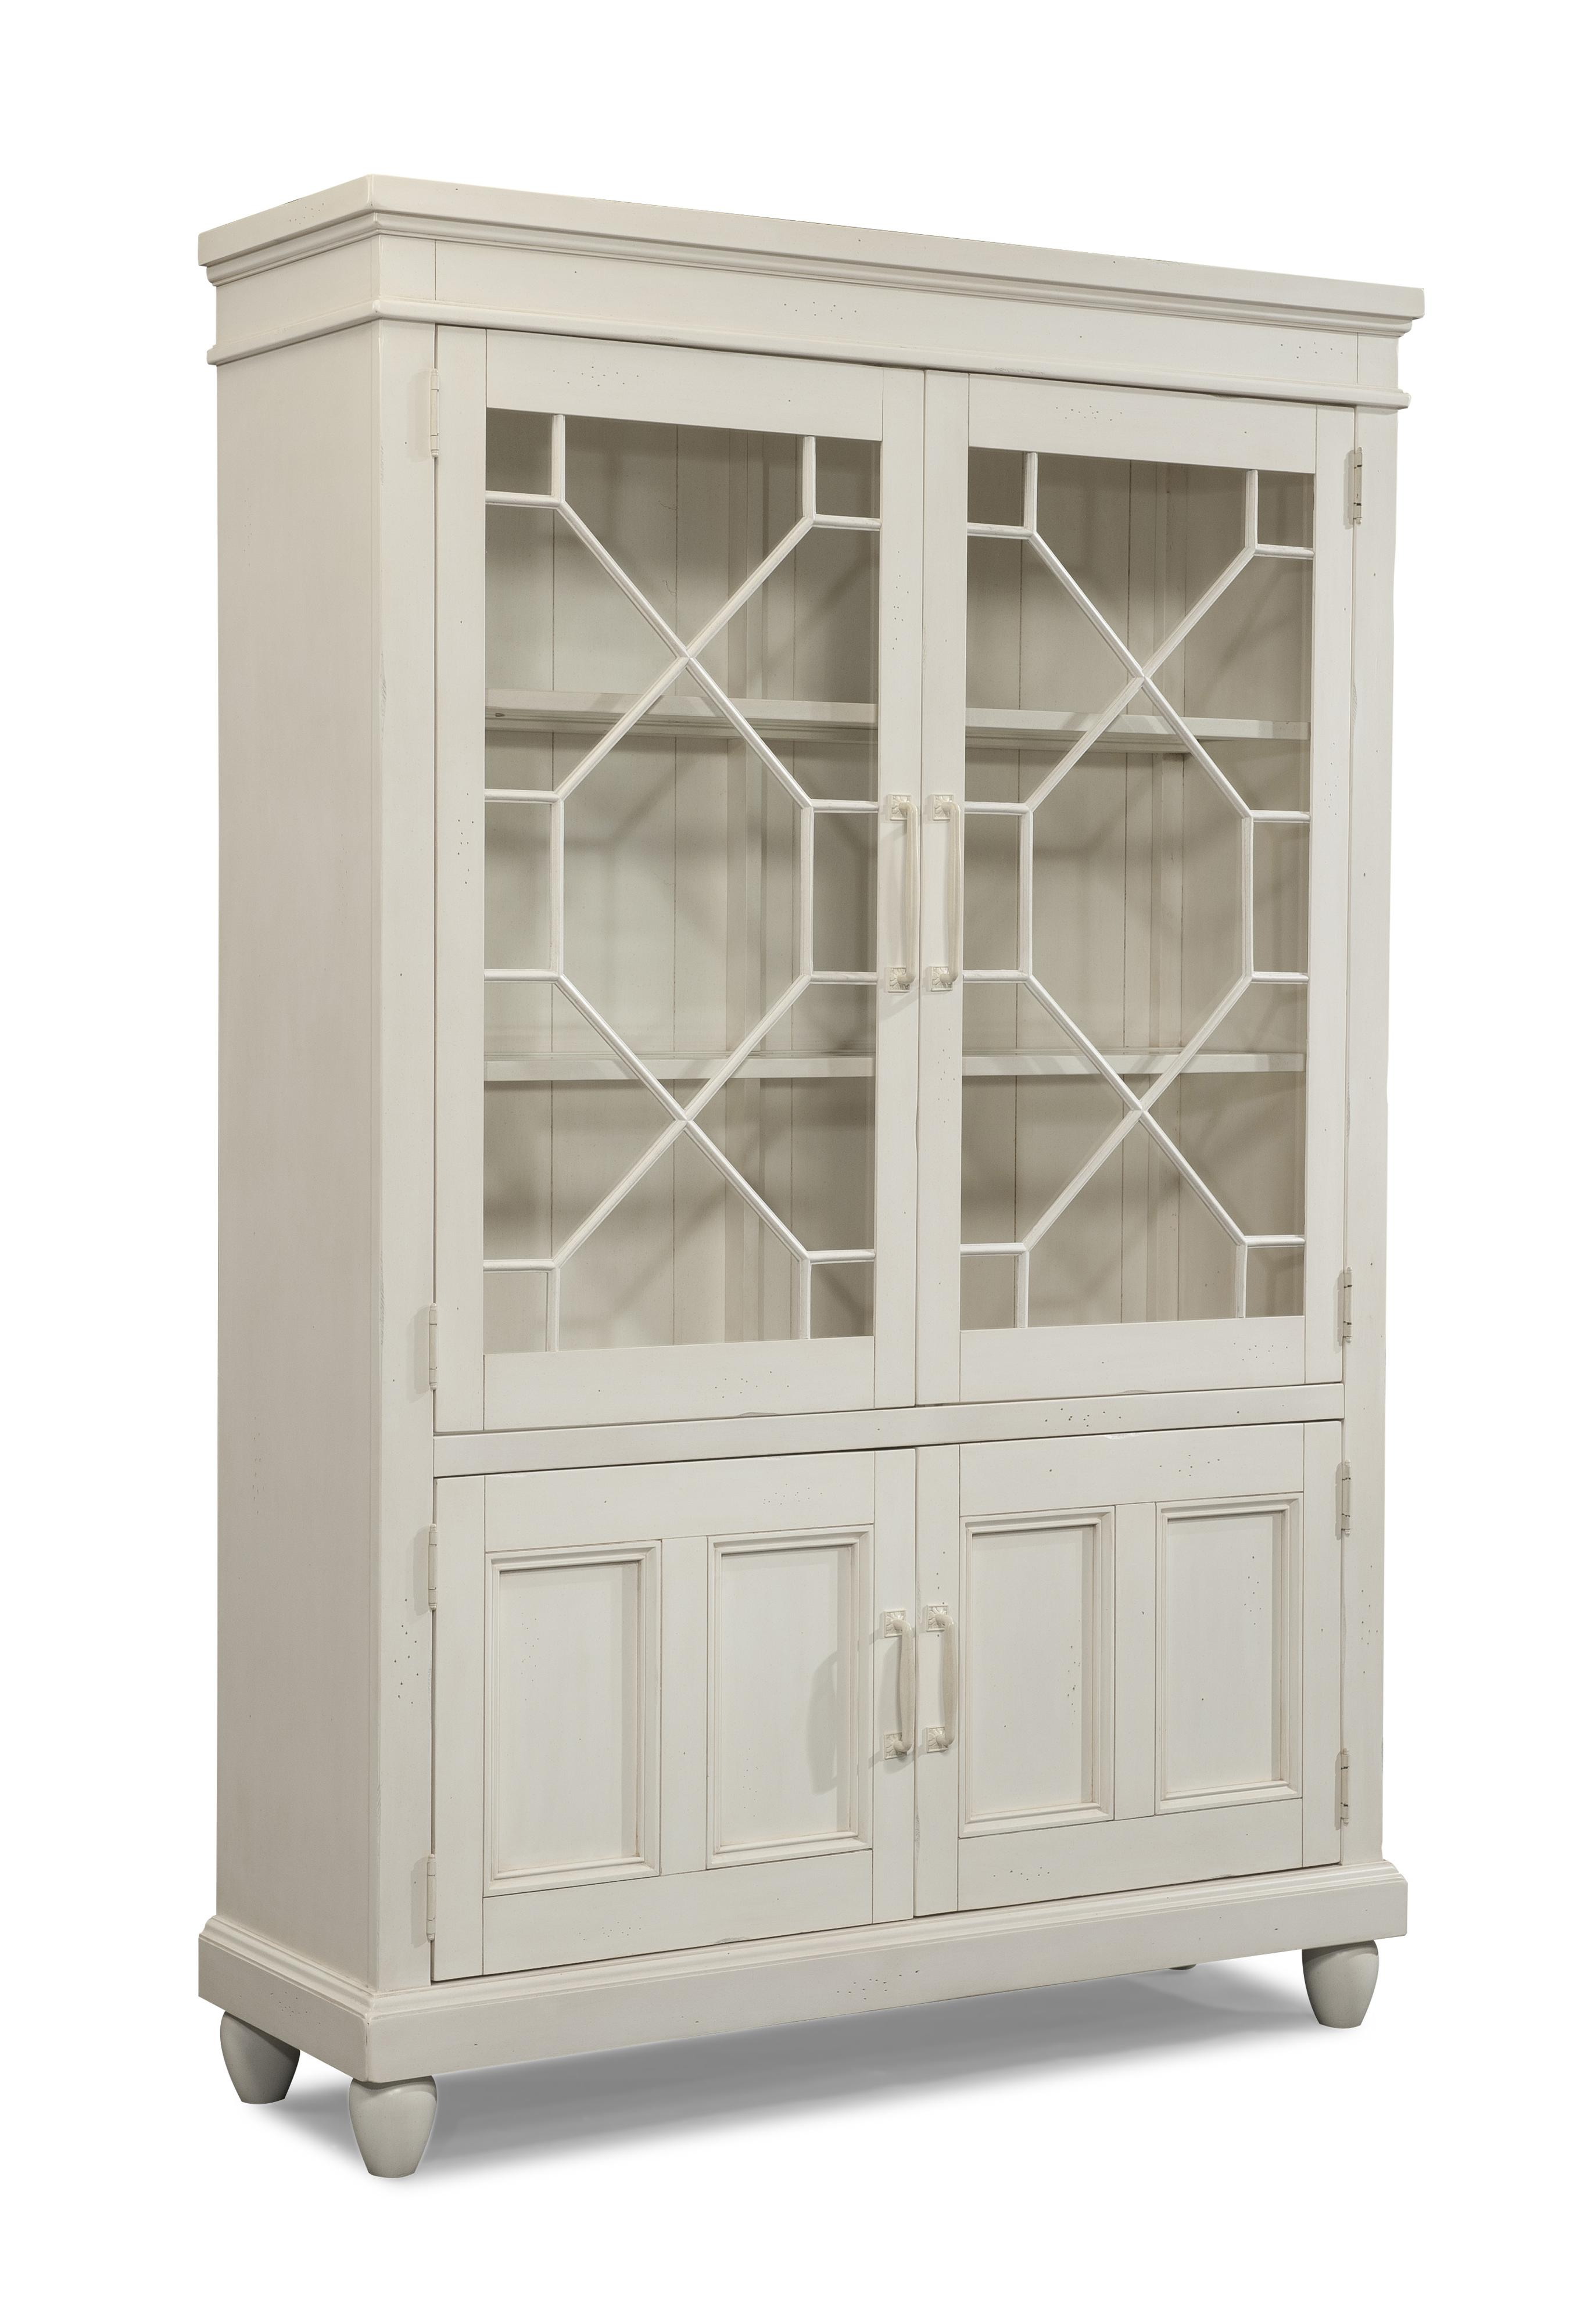 Easton Collection Sea Breeze Blossom-White Curio - Item Number: 424-892 CURI